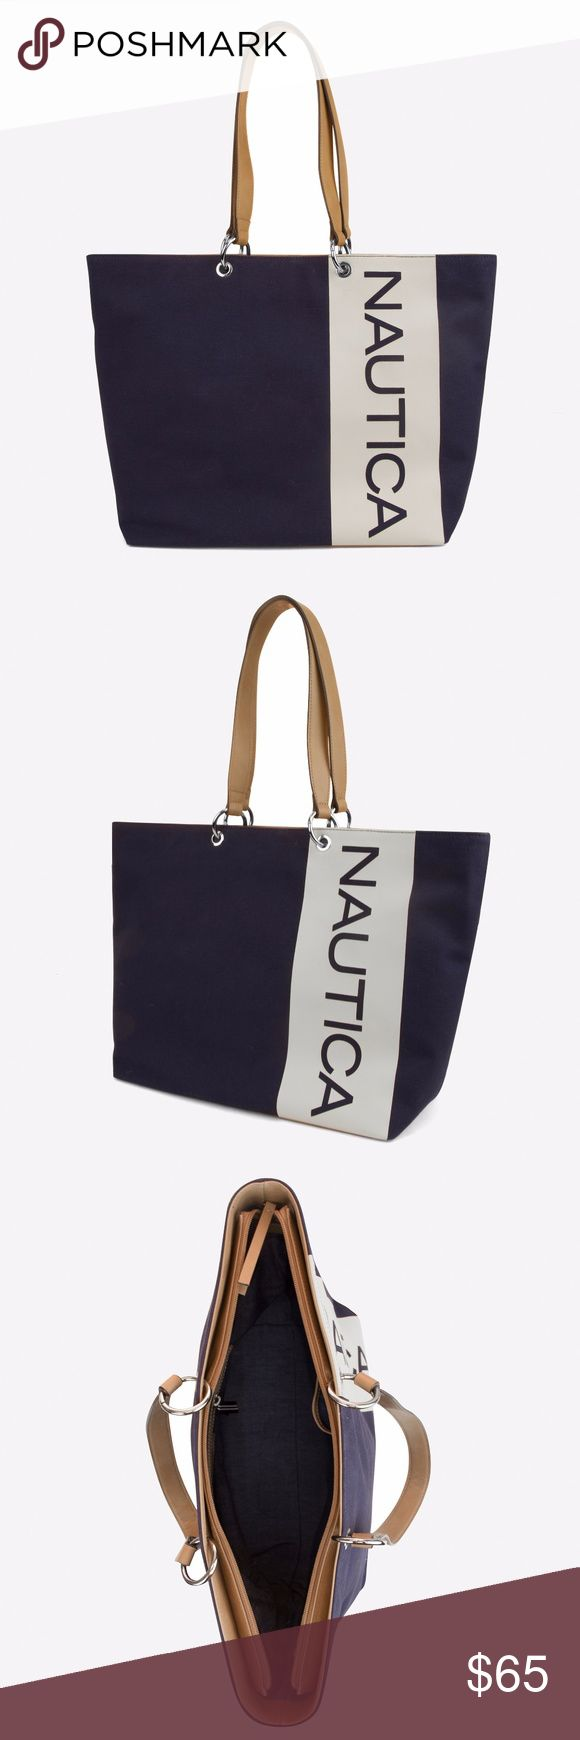 """SALE!NEW W/ TAG NAUTICA BANYAN SIGNATURE TOTE In a single, streamlined design, this tote carries it all with ease. It features top-zip closure to keep you secure as well as a signature logo for extra style points. Features Body: Canvas with latex logo; Trim: Faux leather (PU) Dimensions: 18"""" x 12"""" x 5.5"""" Zip-top closure; interior zip pocket NAUTICA Bags Totes"""